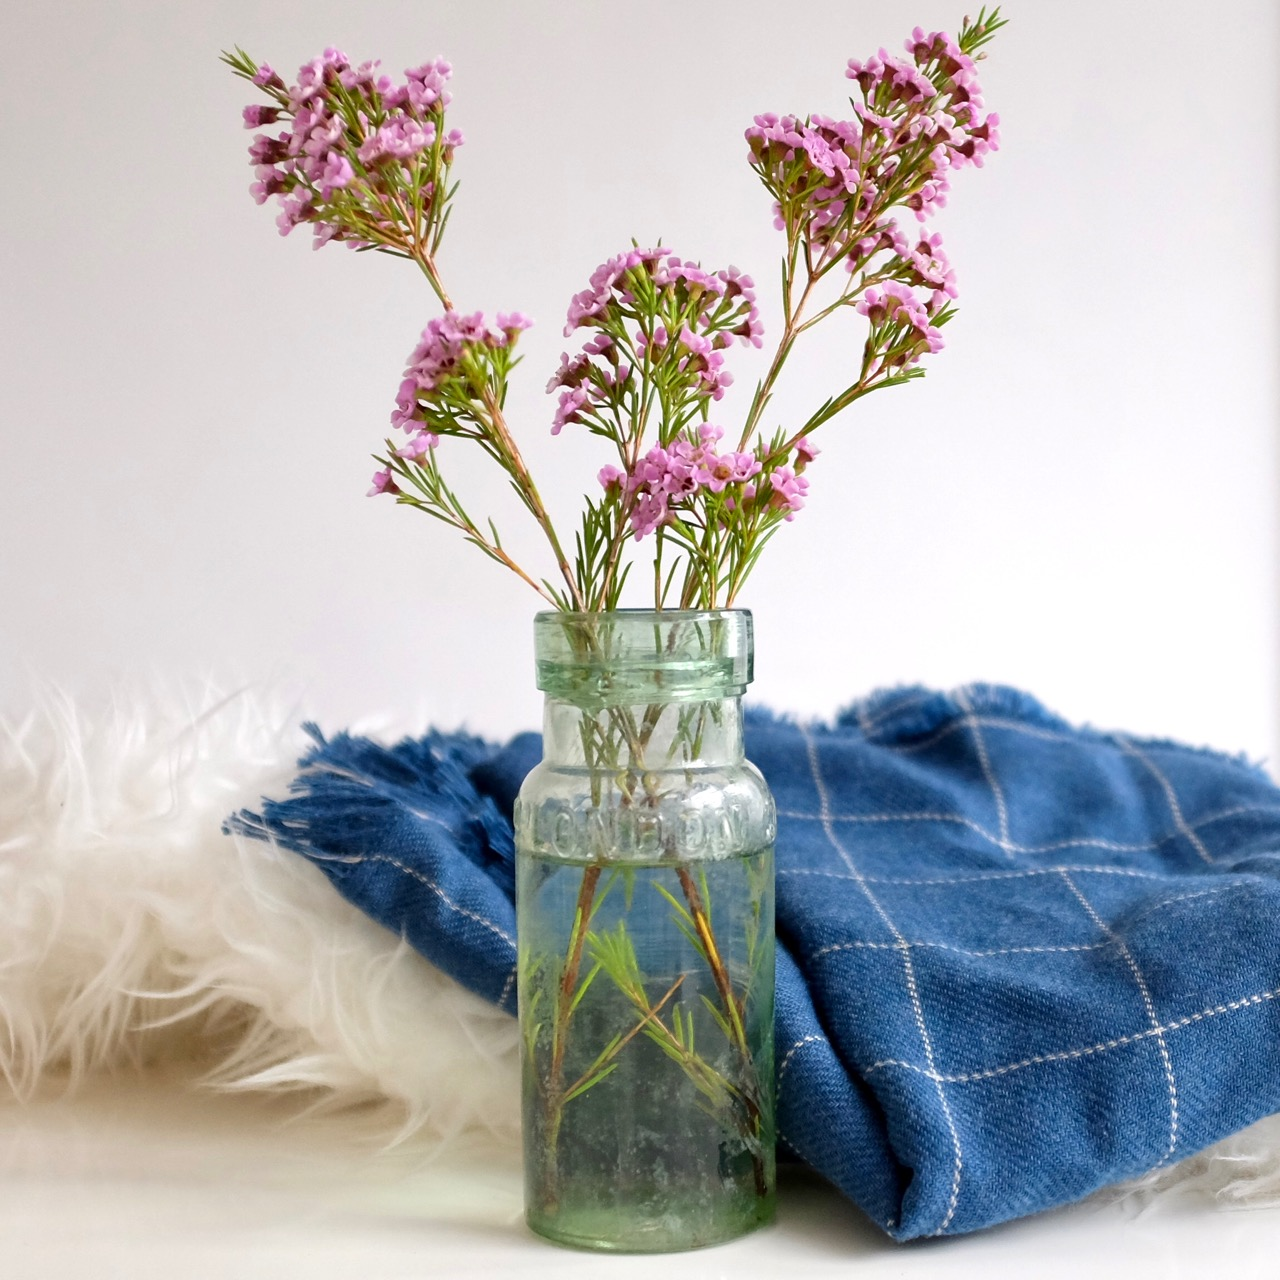 Pink waxflowers in old glass jar